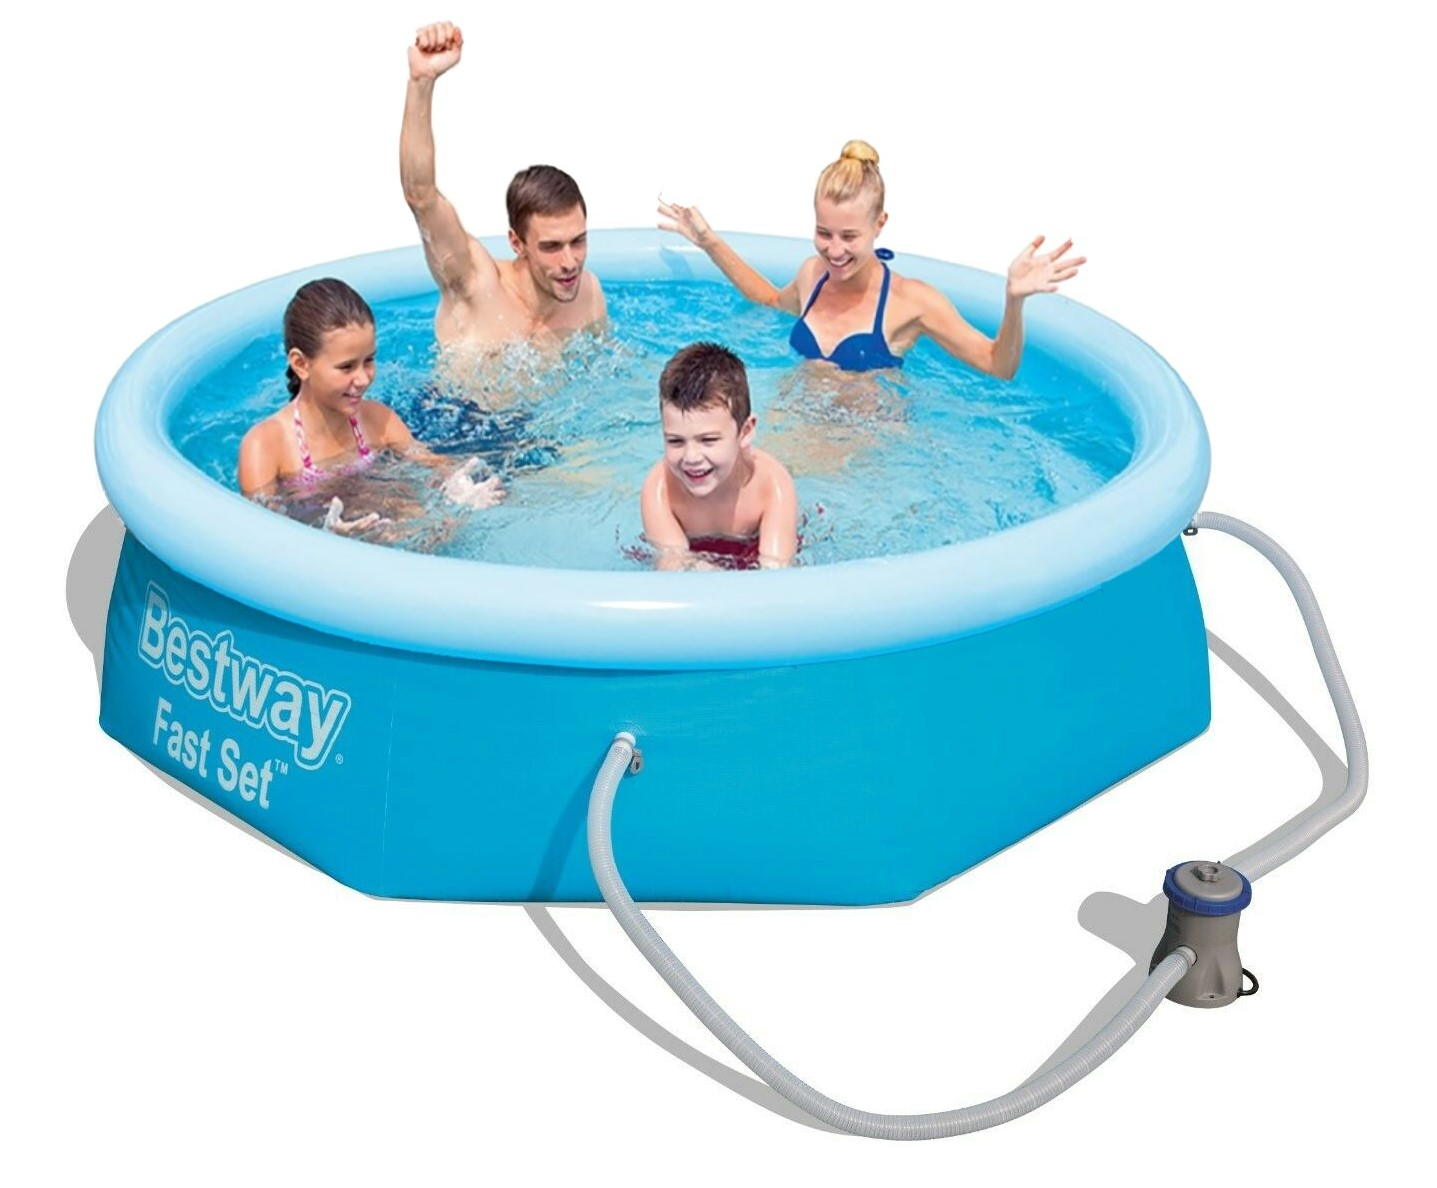 Pool Solarheizung Welche Pumpe Bestway Fast Set Pool 244x66cm Pumpe 57268